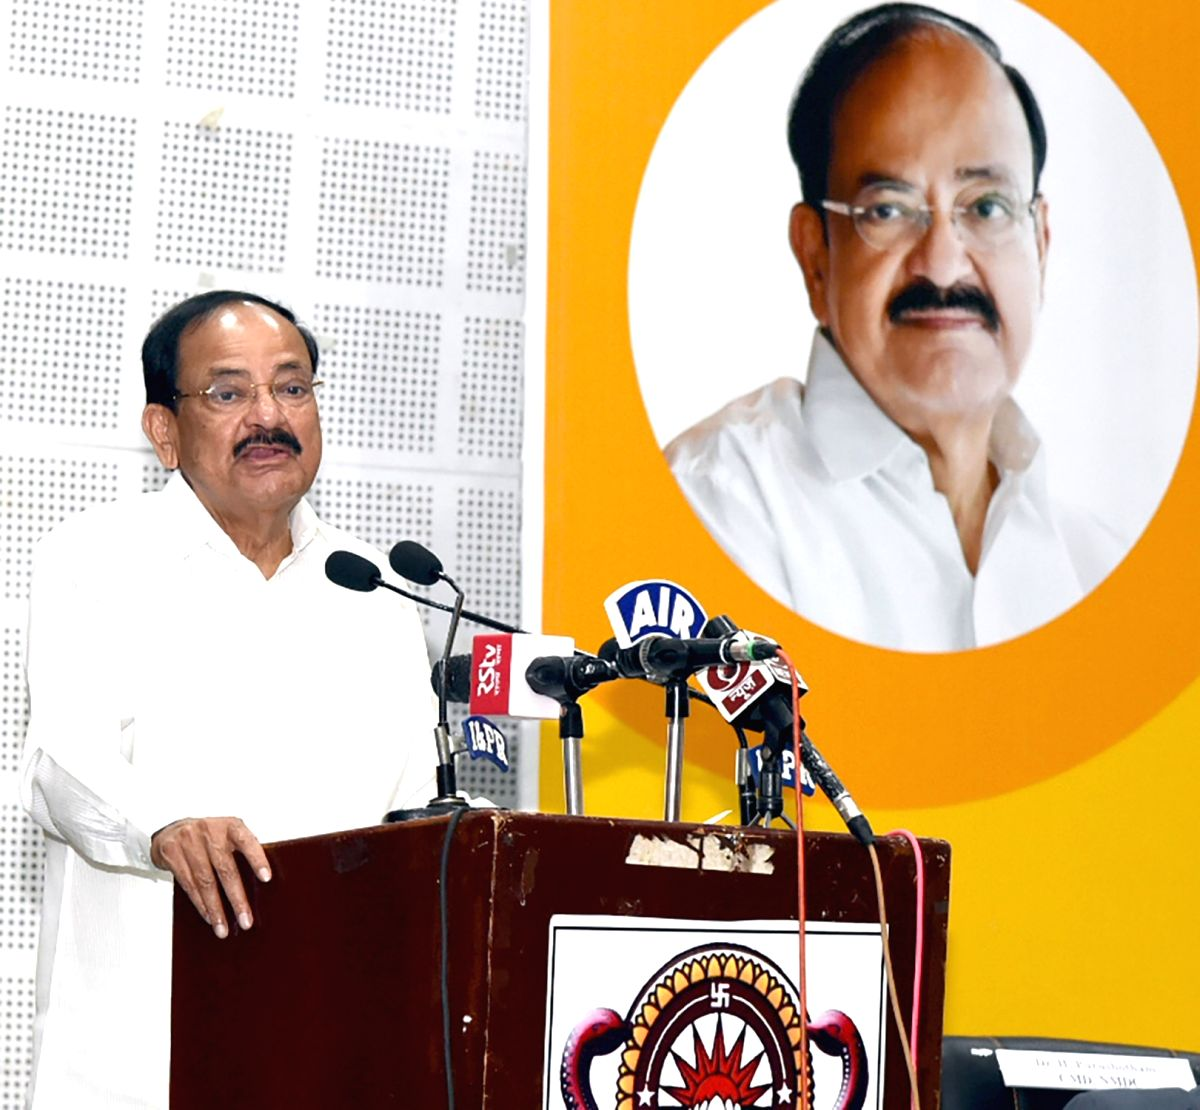 Visakhapatnam: Vice President M. Venkaiah Naidu addresses at an event to inaugurate the two-day conference on 'Industry Academy Interaction for Improvement of Quality of Academics' in Visakhapatnam, Andhra Pradesh, on June 2, 20